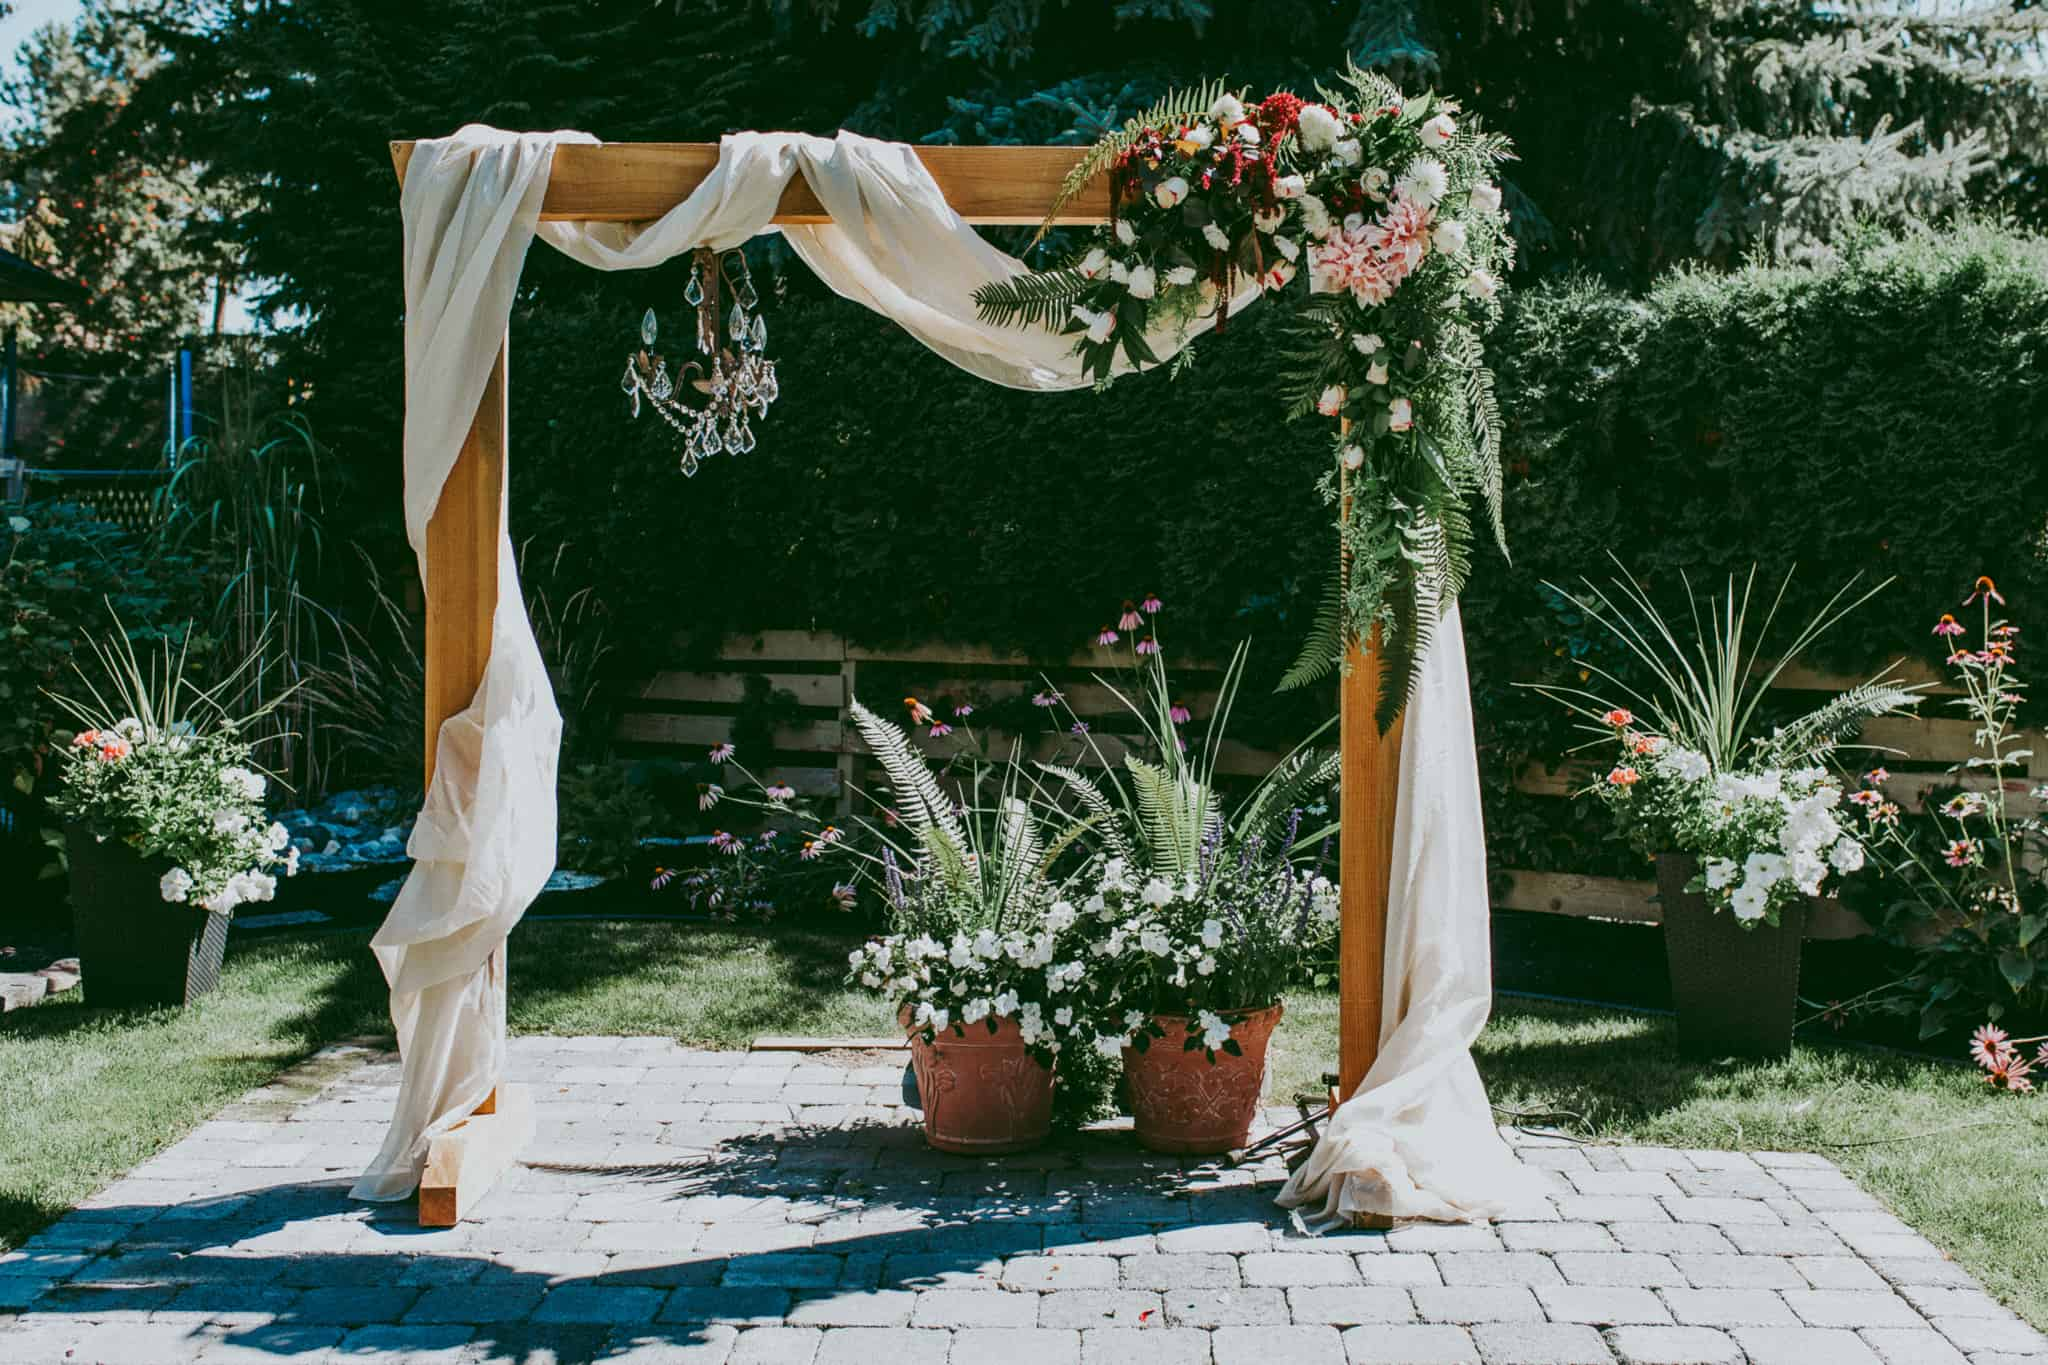 With fabric and flowers wedding arch diy